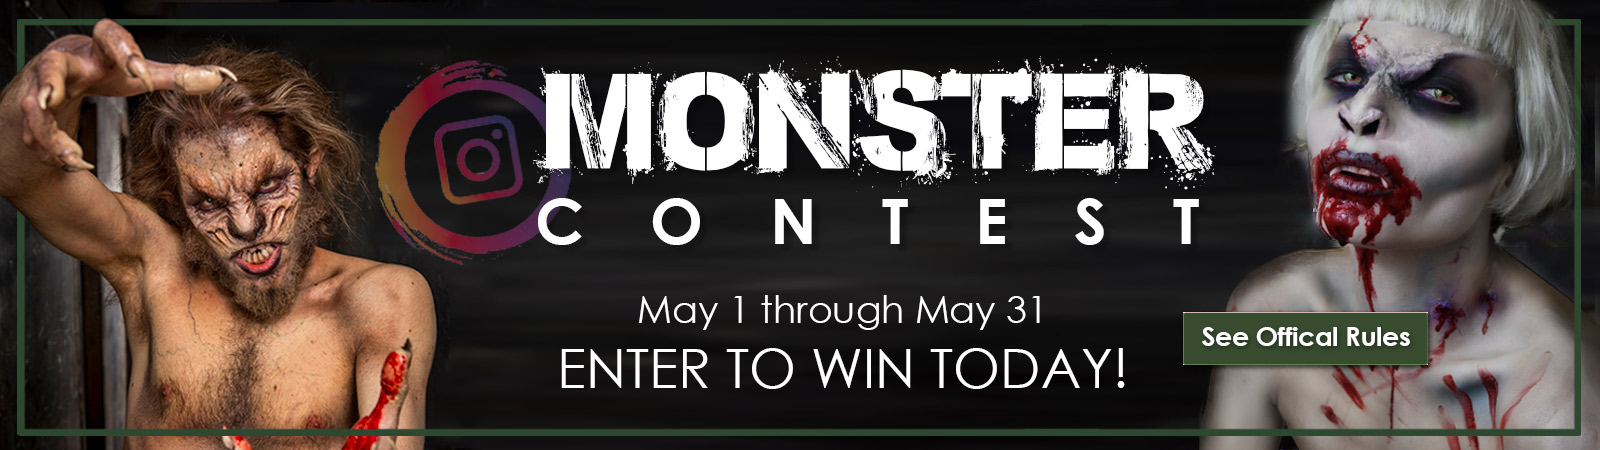 May Monster Contest